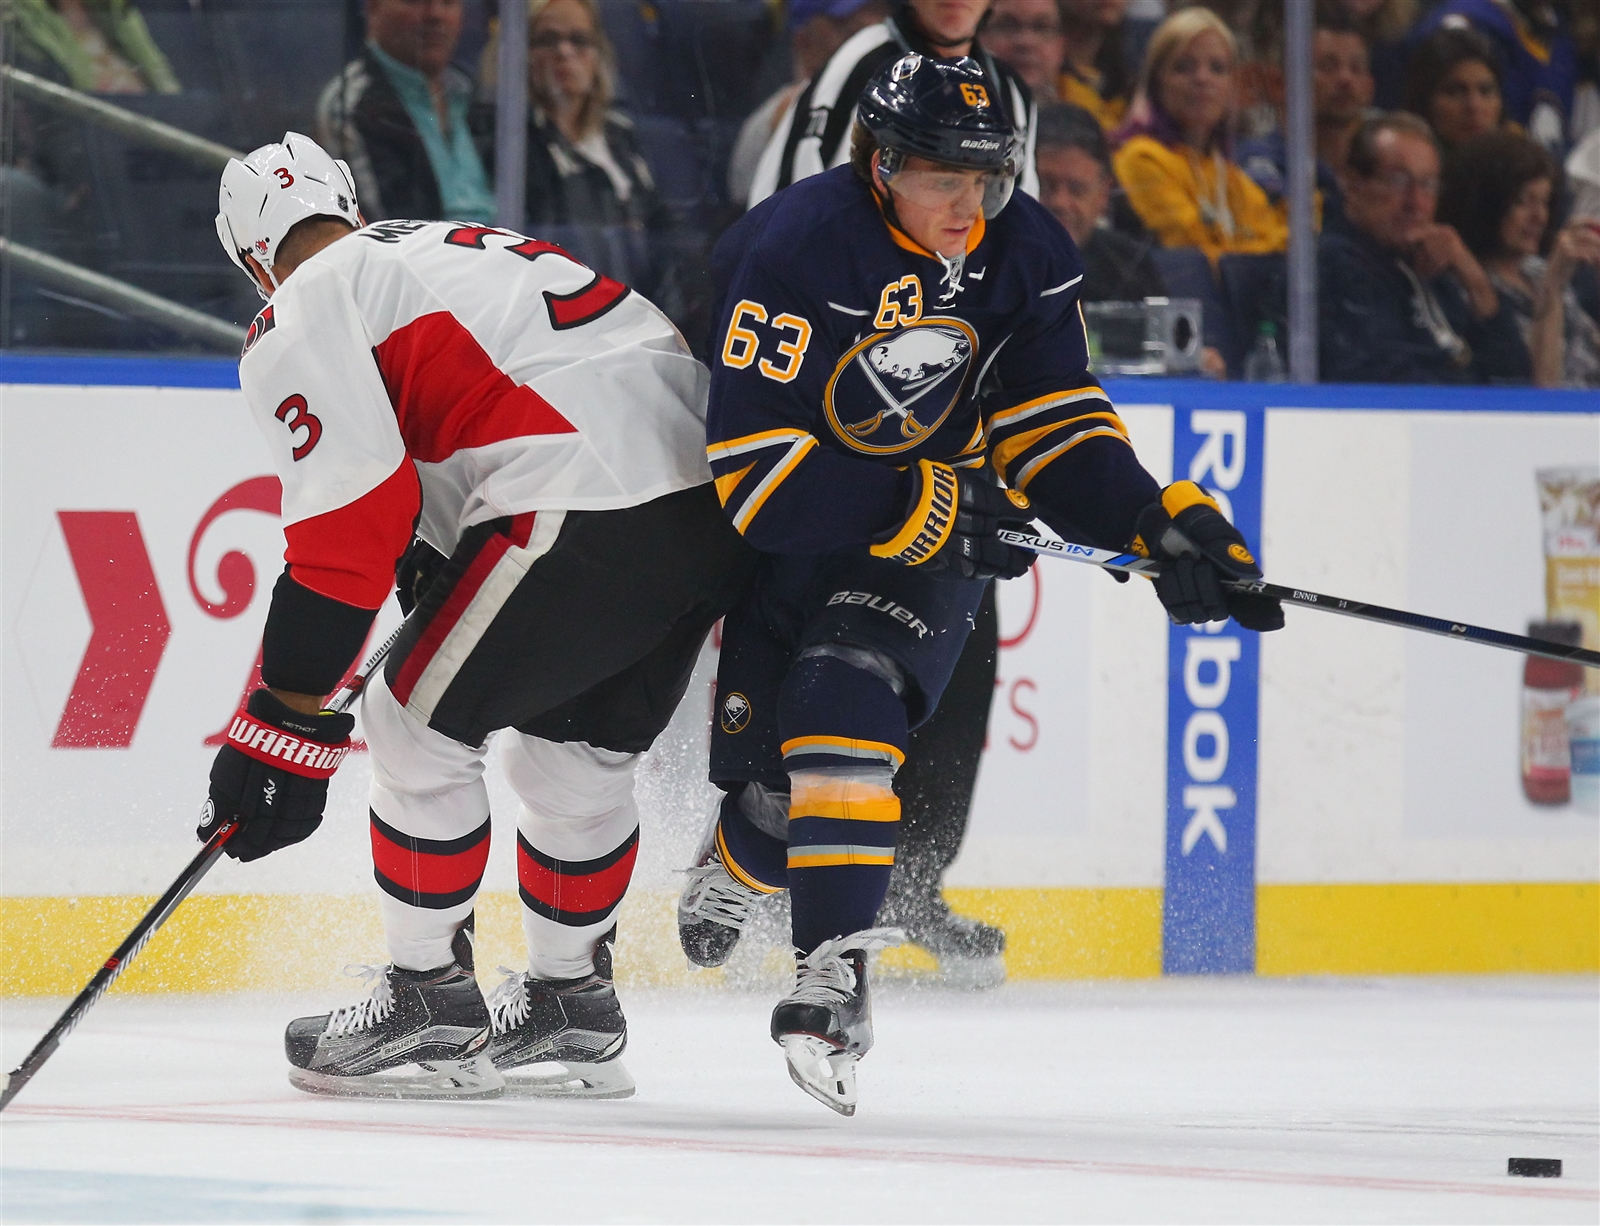 Tyler Ennis tries to avoid the check of the Senators' Marc Methot.